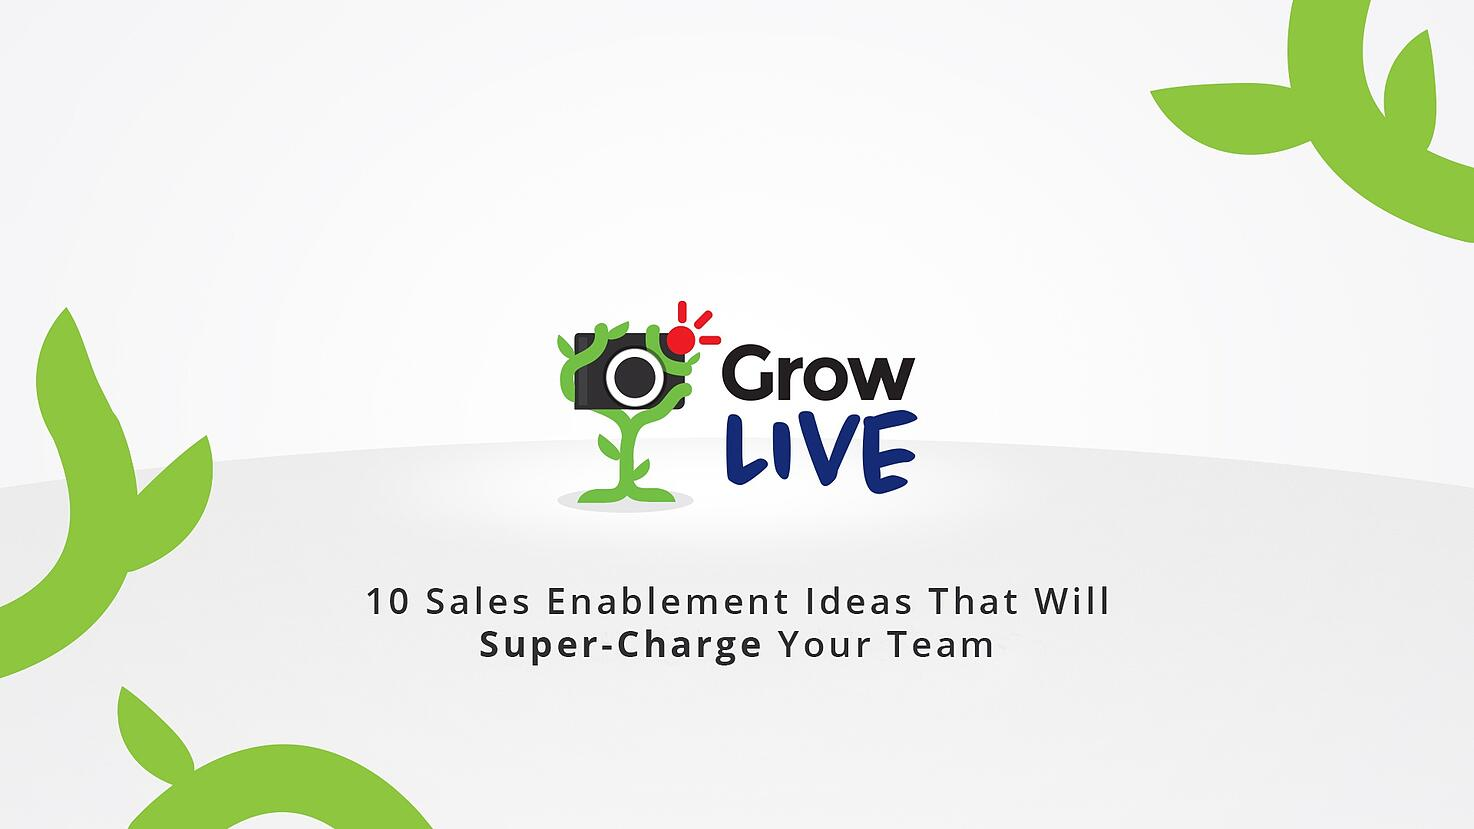 15 - Grow Live - 10 Sales Enablement Ideas.jpg